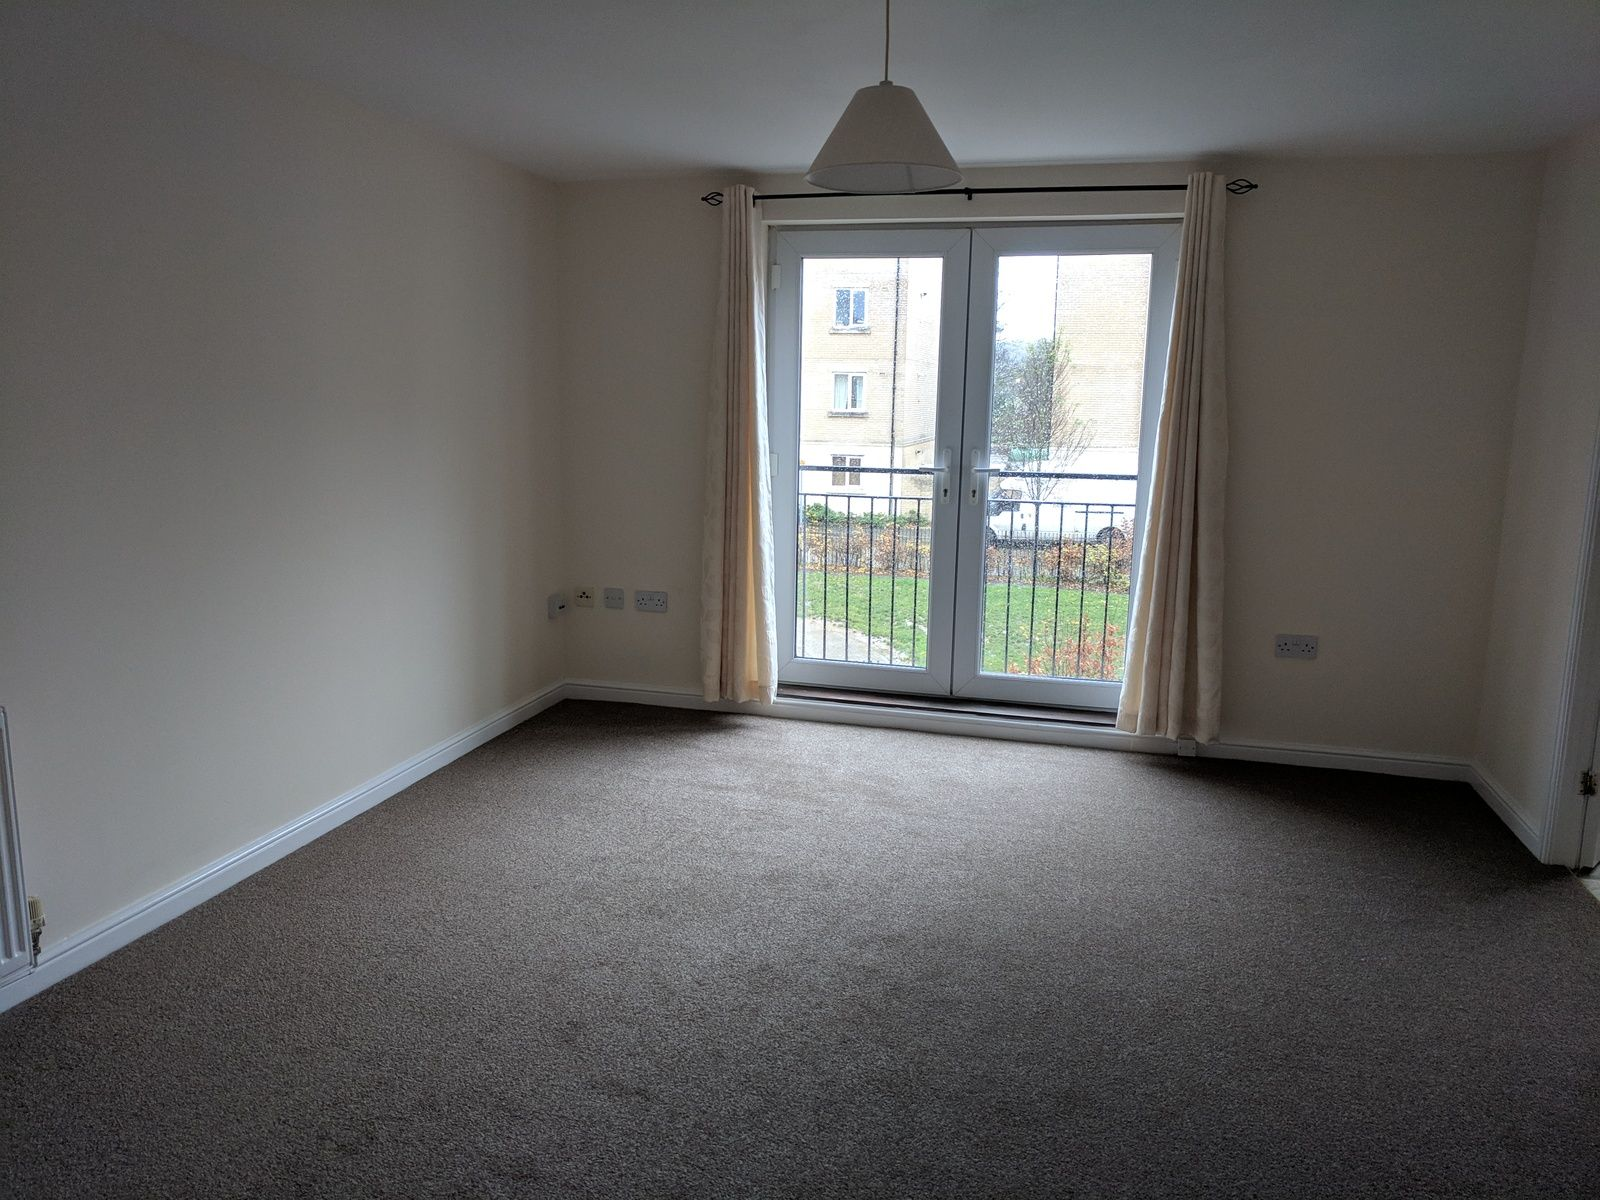 2 bedroom apartment flat/apartment SSTC in Ipswich - Photograph 1